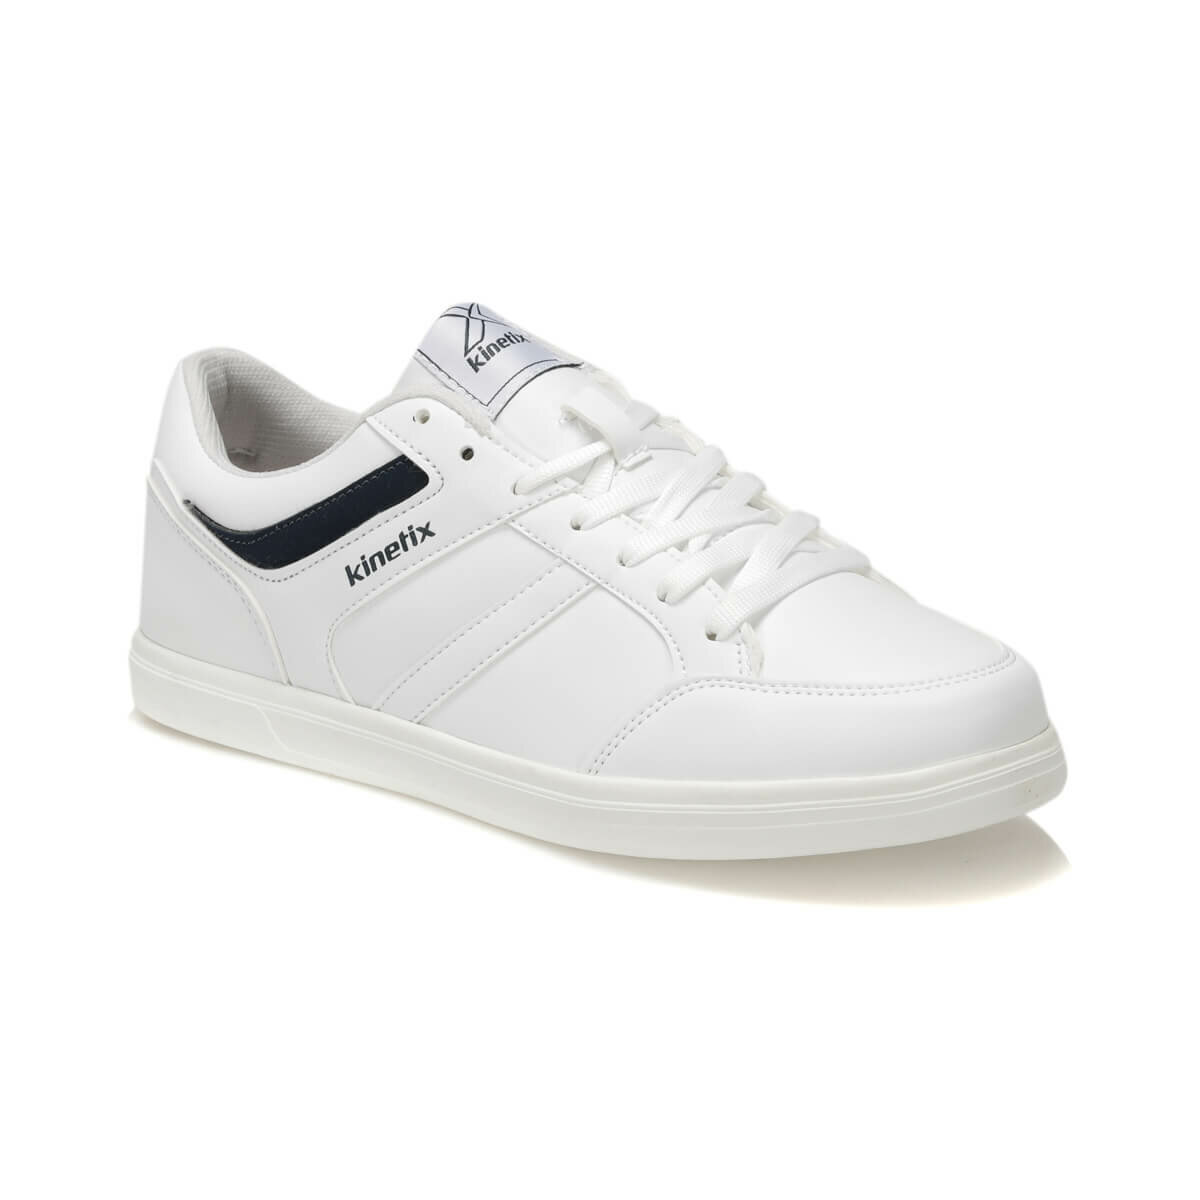 FLO VICKER M White Men 'S Sneaker Shoes KINETIX